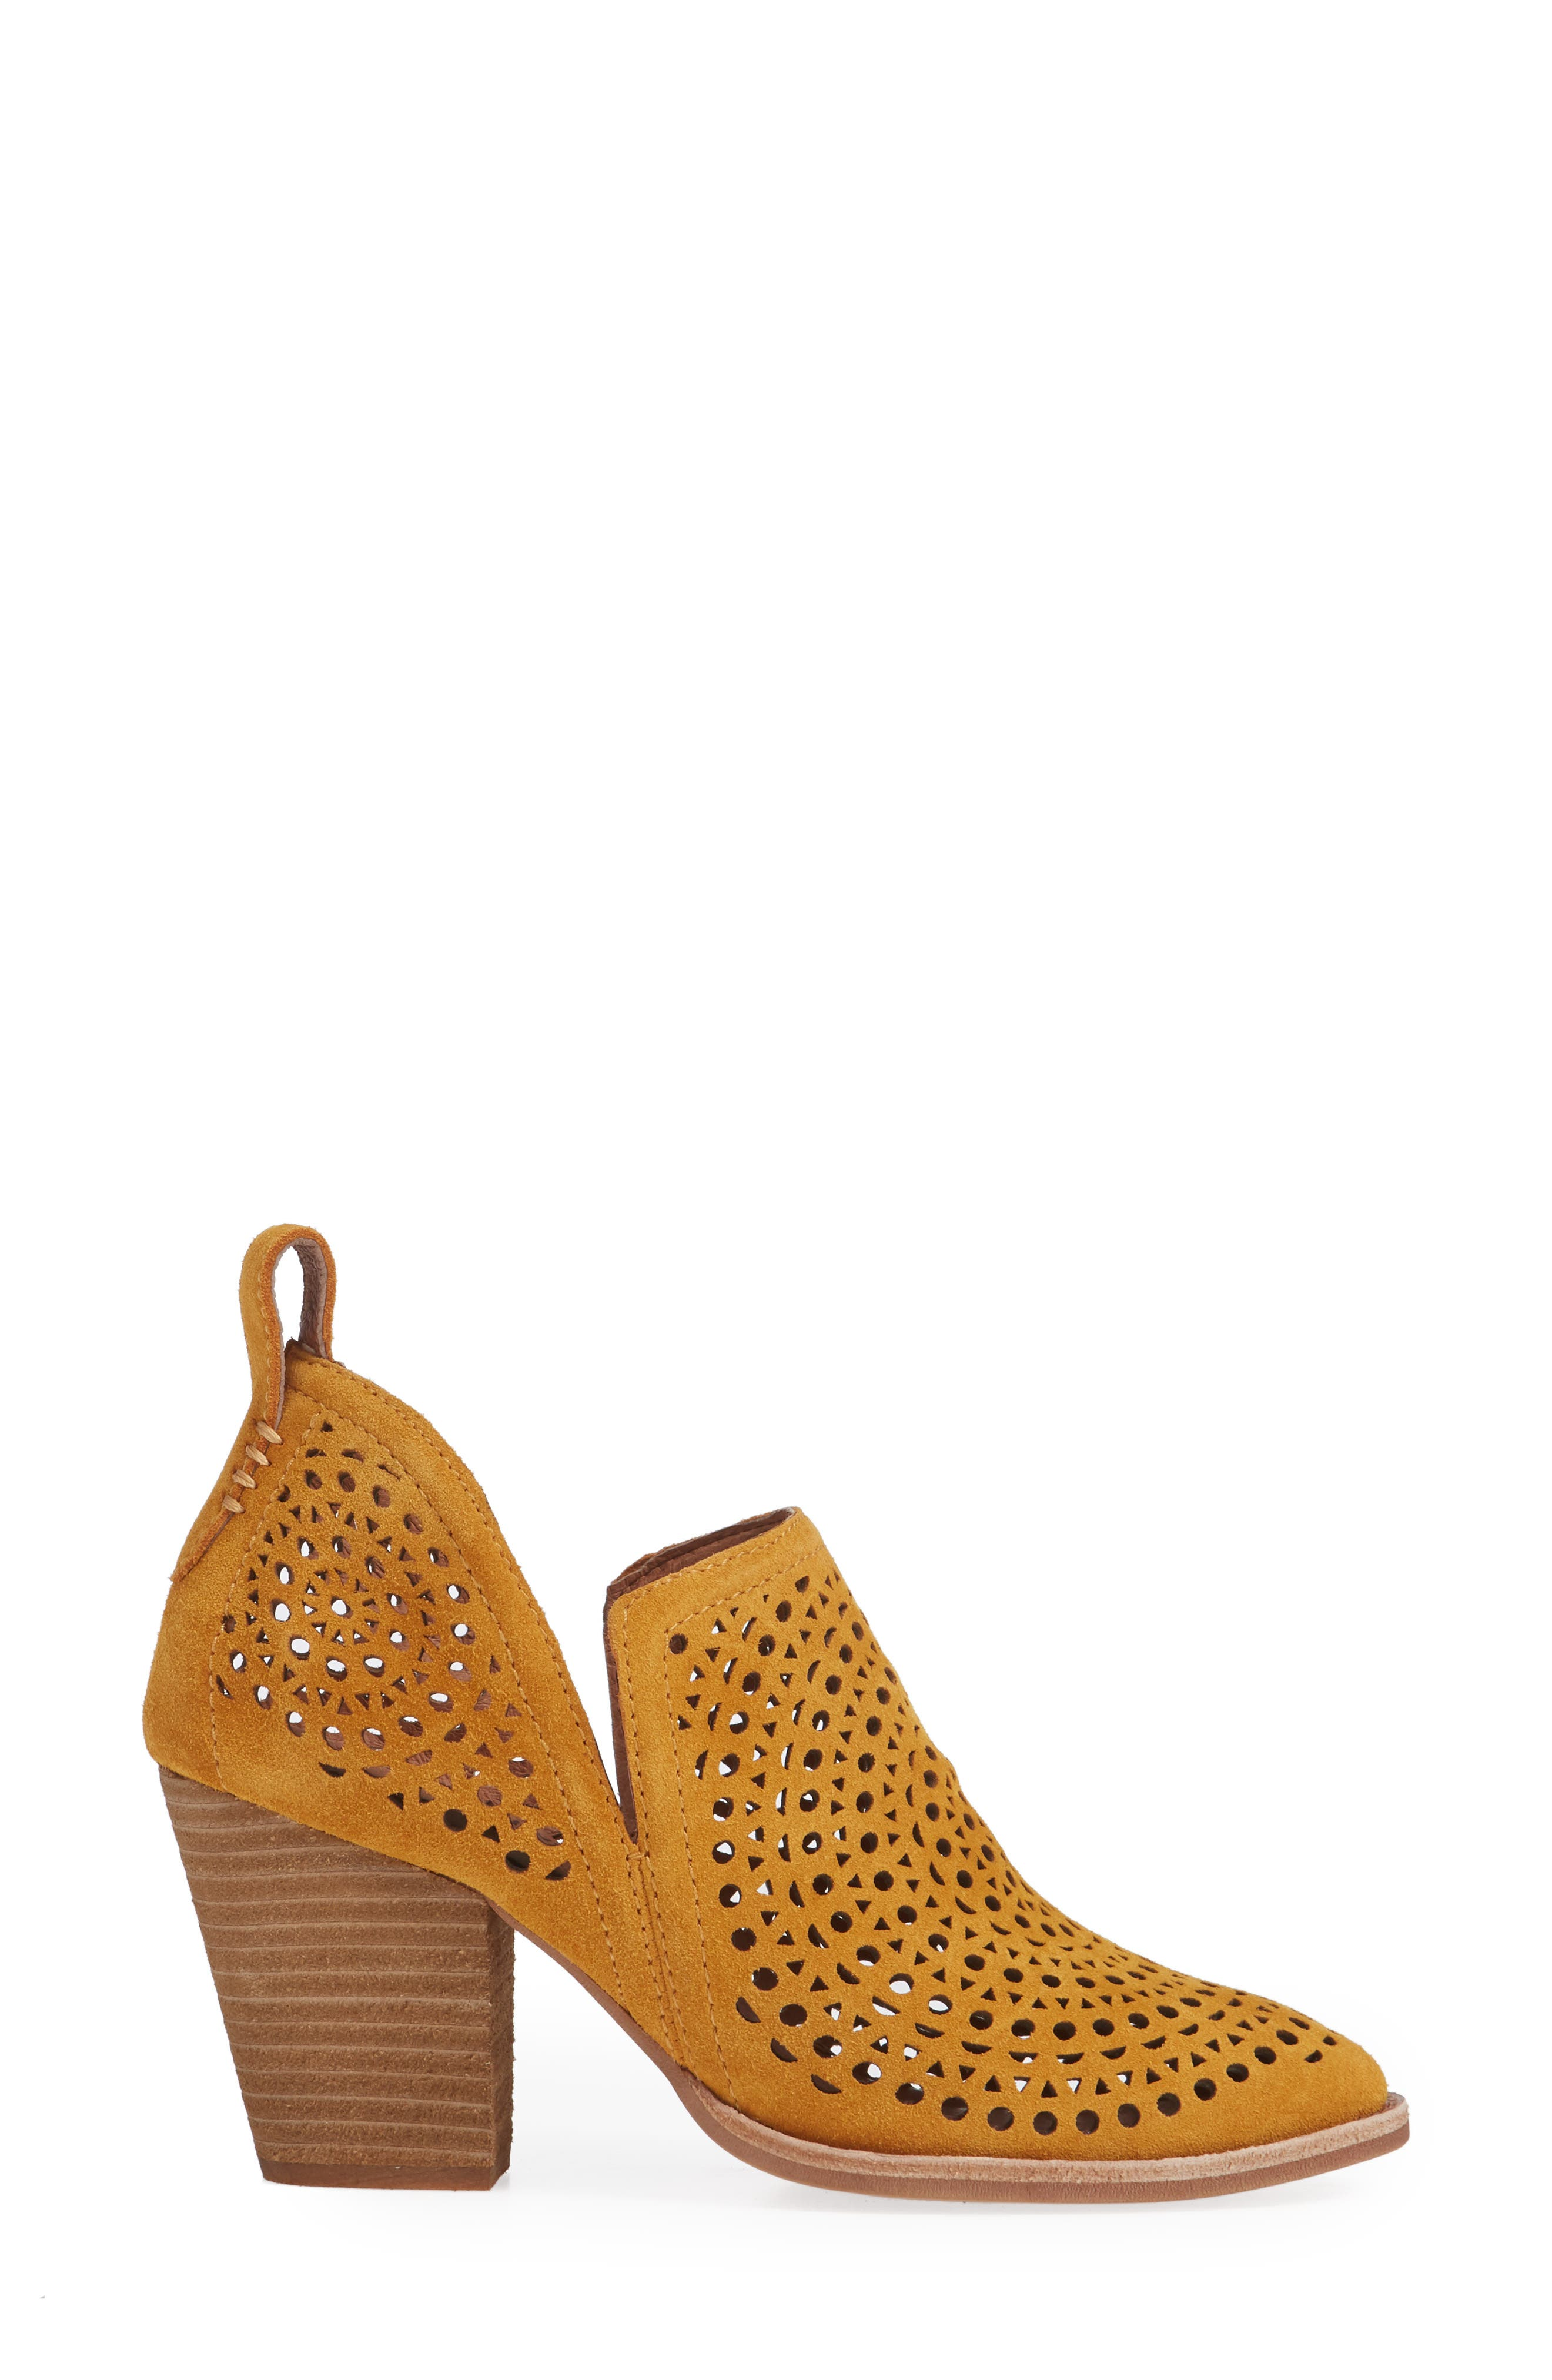 Rosalee Bootie,                             Alternate thumbnail 3, color,                             MUSTARD SUEDE